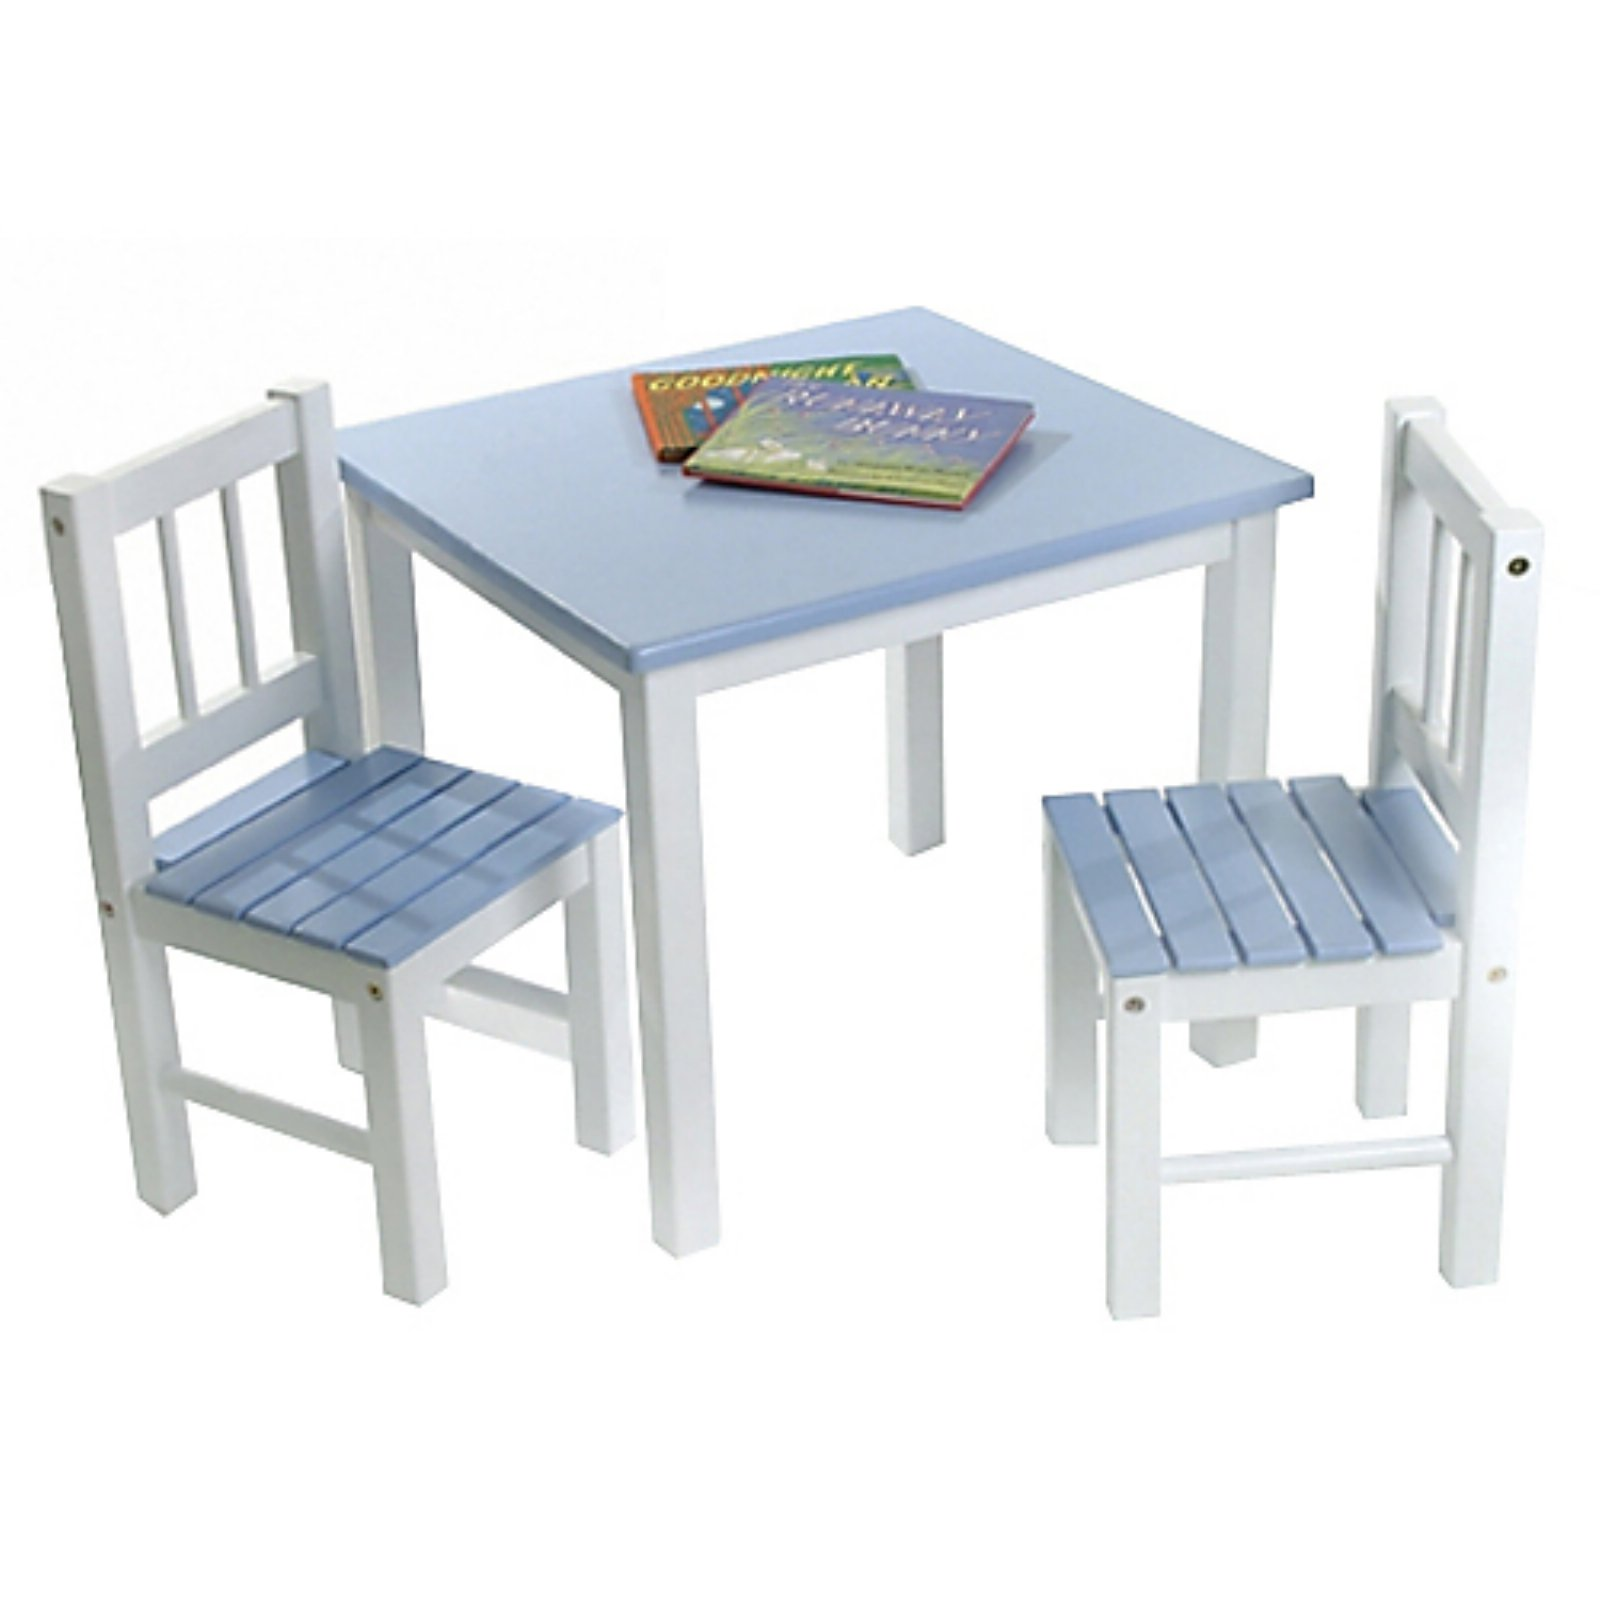 Charmant Lipper Kids Small Blue And White Table And Chair Set